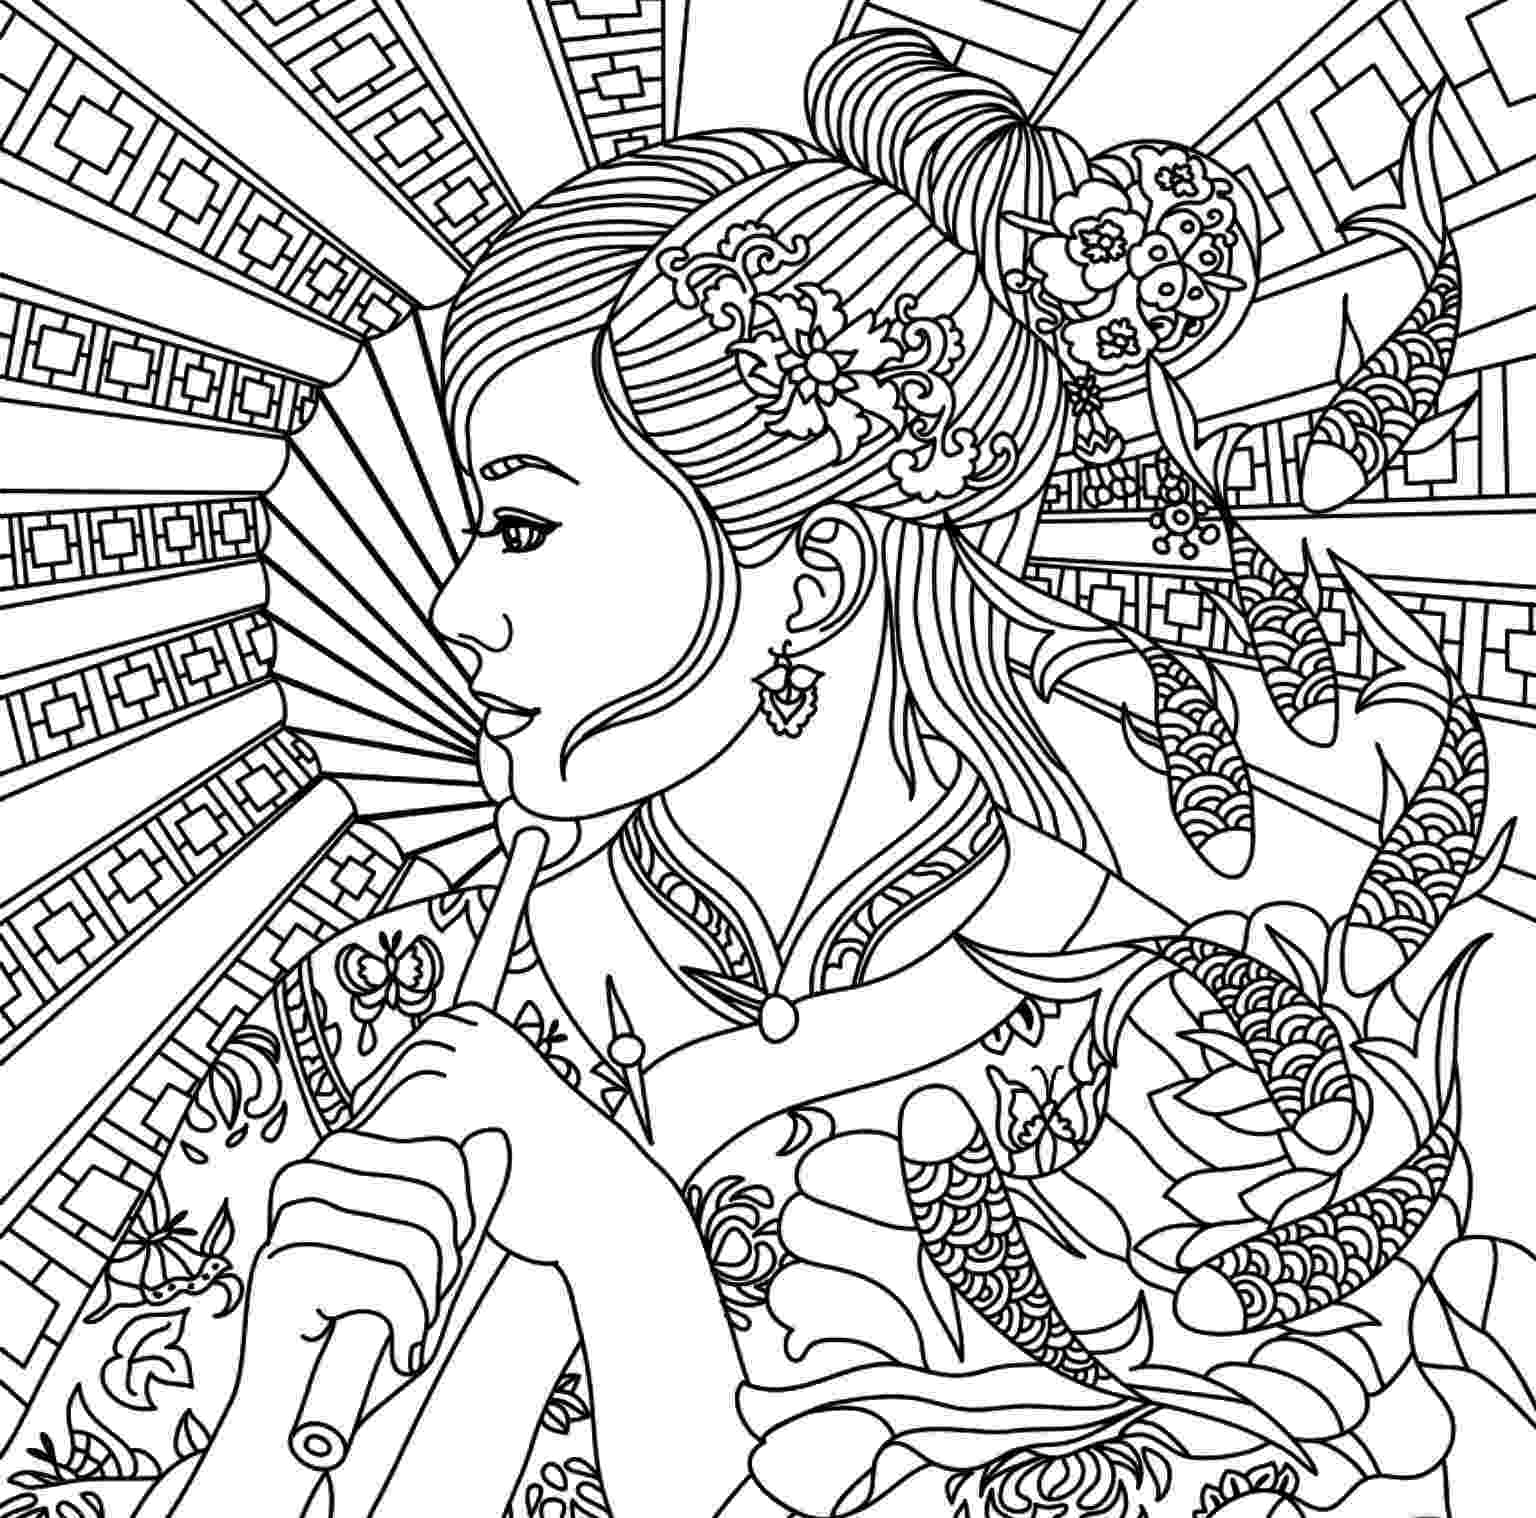 full size coloring pages easter coloring pages to print 428 country victorian times coloring size full pages